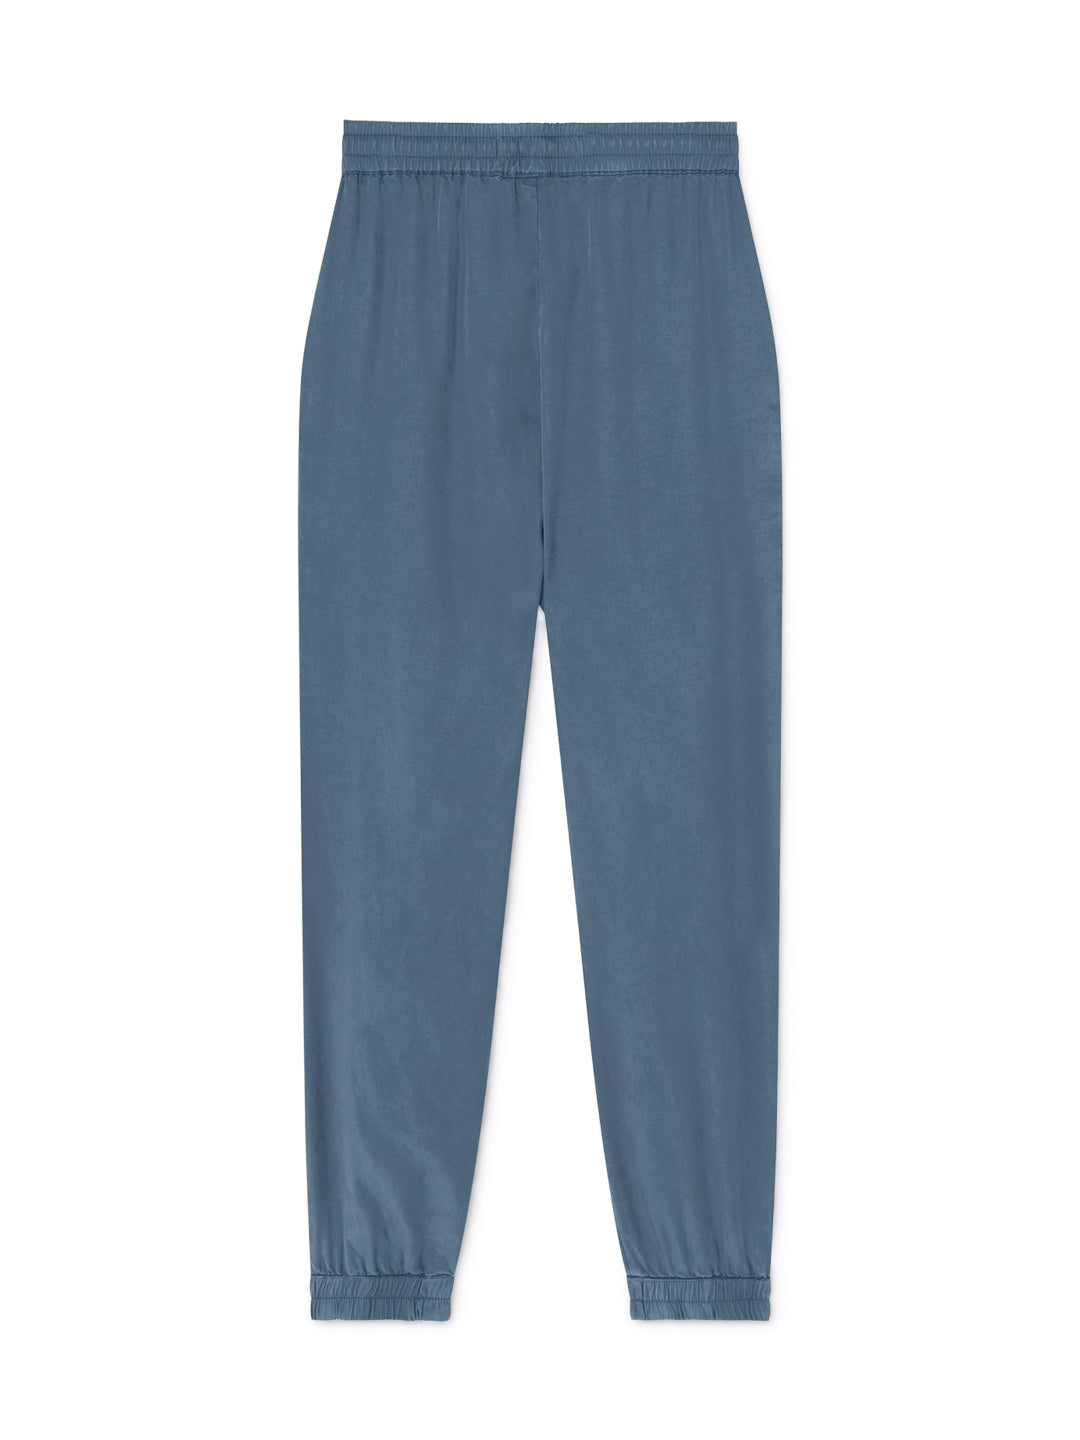 TWOTHIRDS Womens Pants: Kaafu - China Blue back